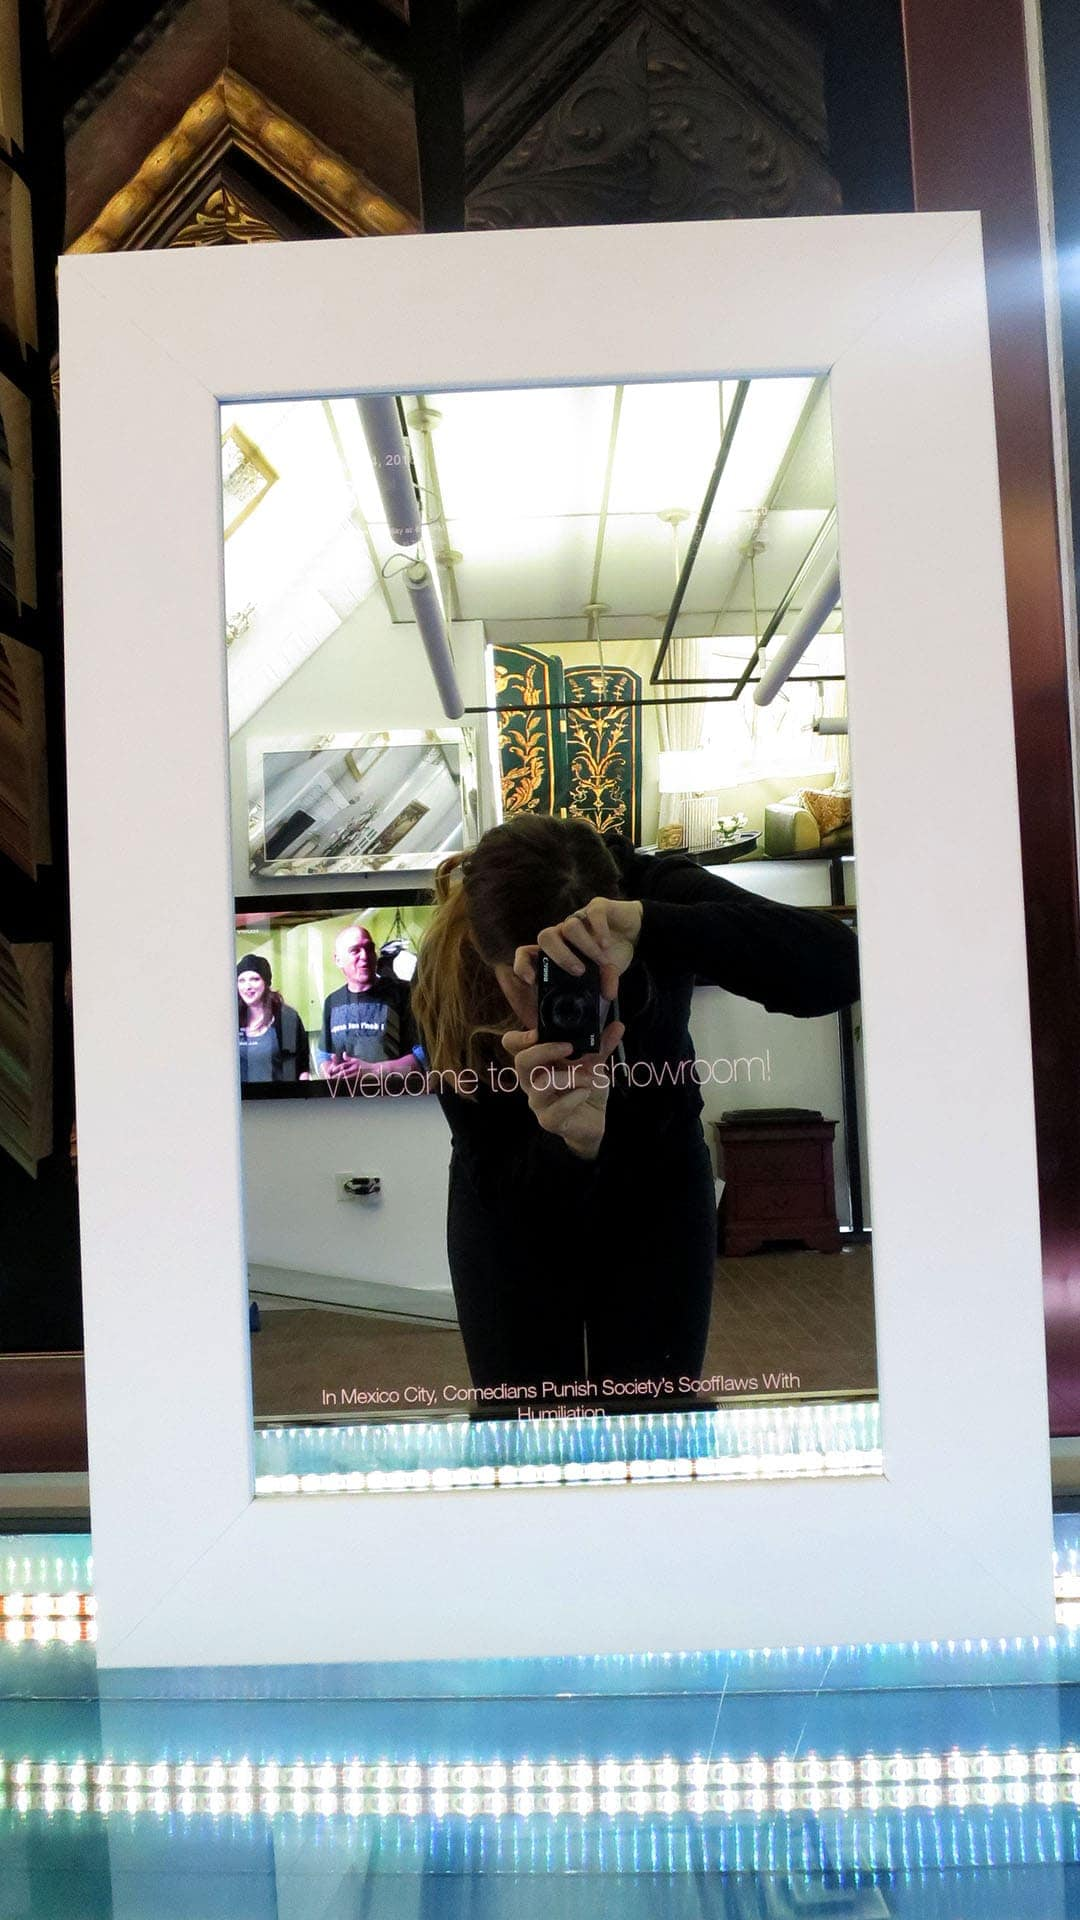 Diy Smart Mirror Step By Step Ultimate Build Guide 2019 New